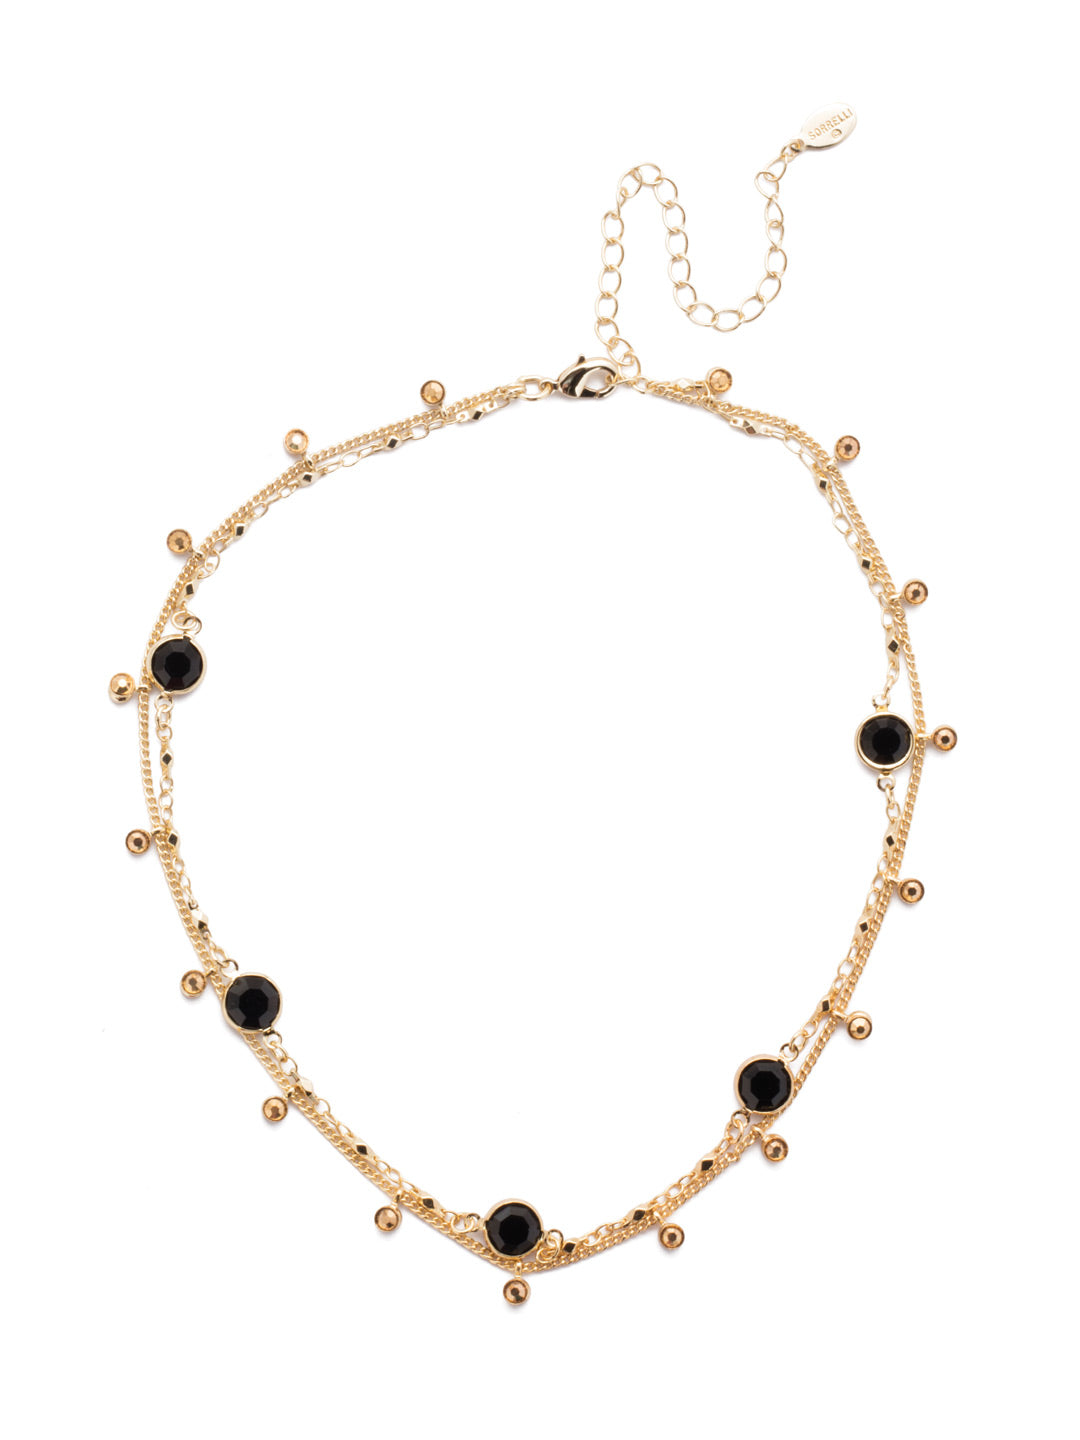 Dewdrop Layered Necklace - NEK36BGGTR